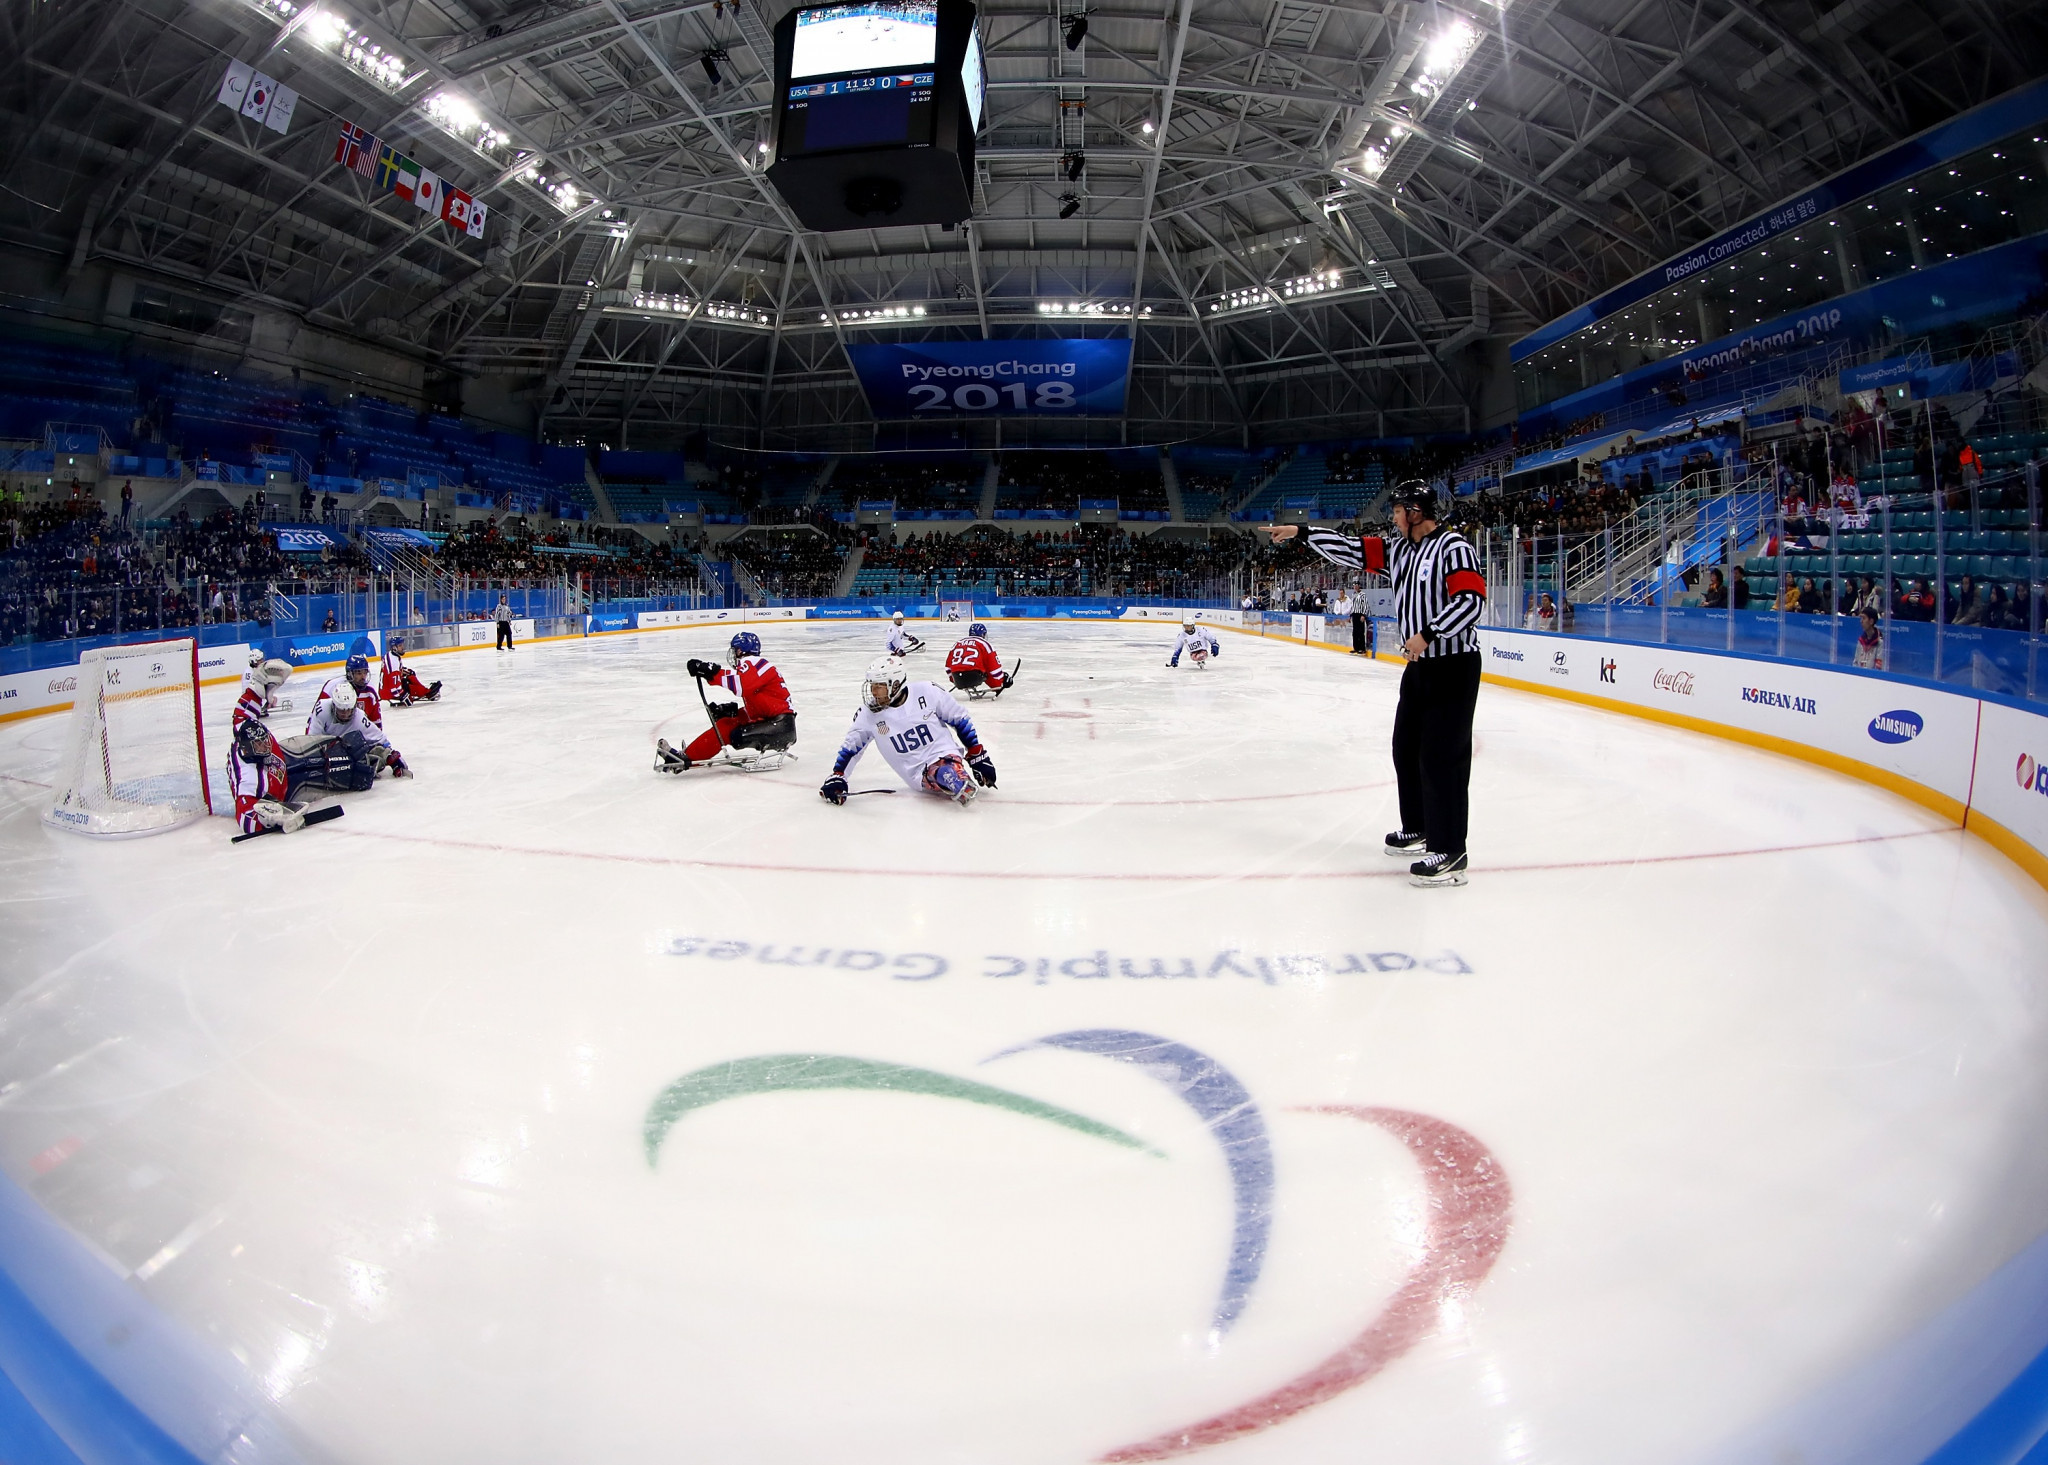 It is hoped the Memorandum of Understanding sighed between the Korean Paralympic Committee and IPC will ensure a lasting legacy for Pyeongchang 2018 in the host country ©Getty Images